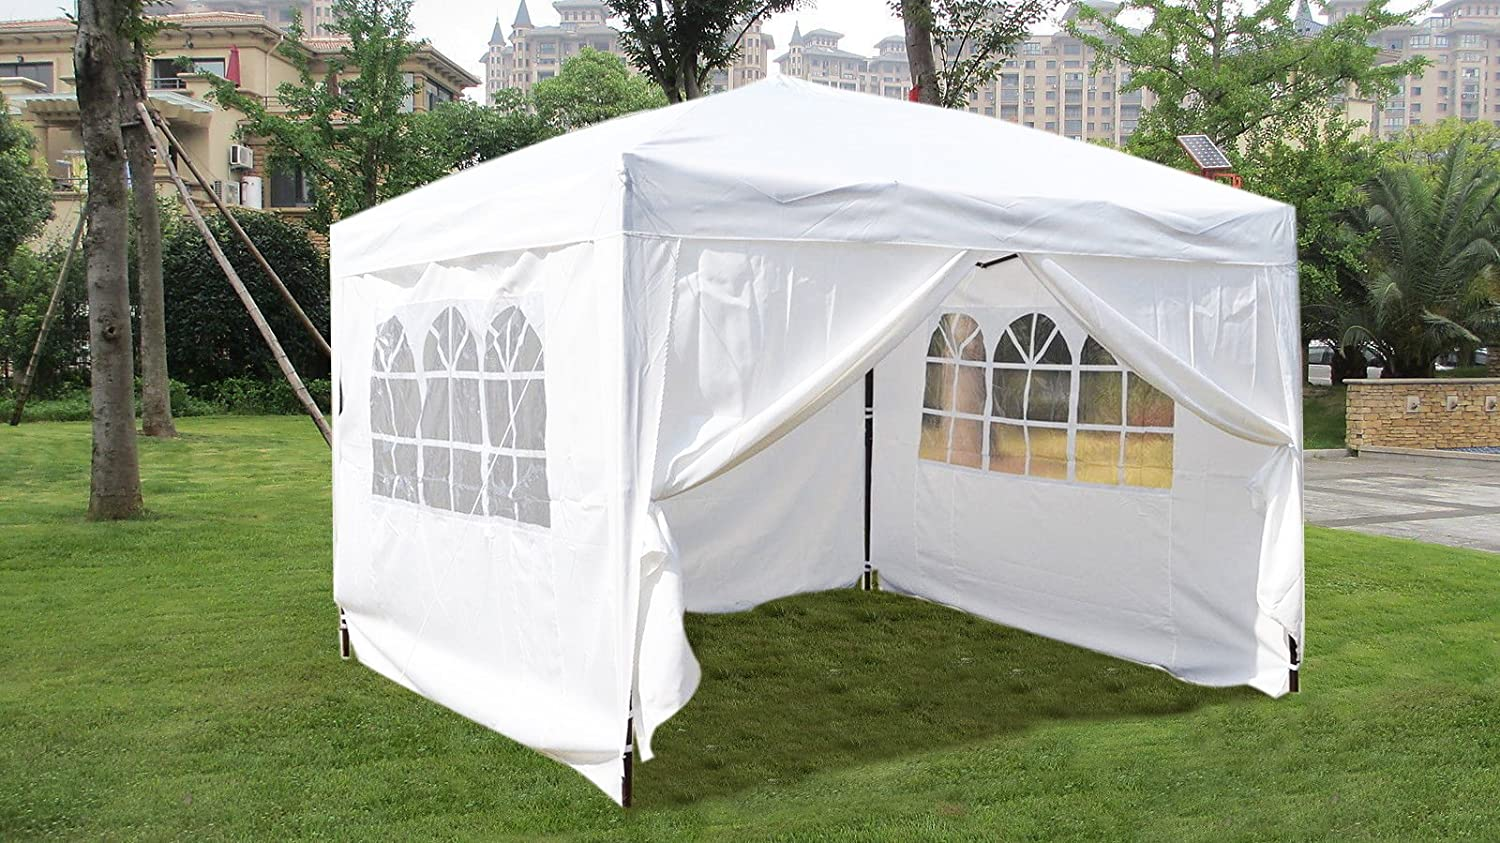 Amazon.com  MCombo EZ Pop Up Wedding Party Tent Folding Gazebo C&ing Canopy with Sides 10u0027 x 10u0027 White  Garden u0026 Outdoor & Amazon.com : MCombo EZ Pop Up Wedding Party Tent Folding Gazebo ...